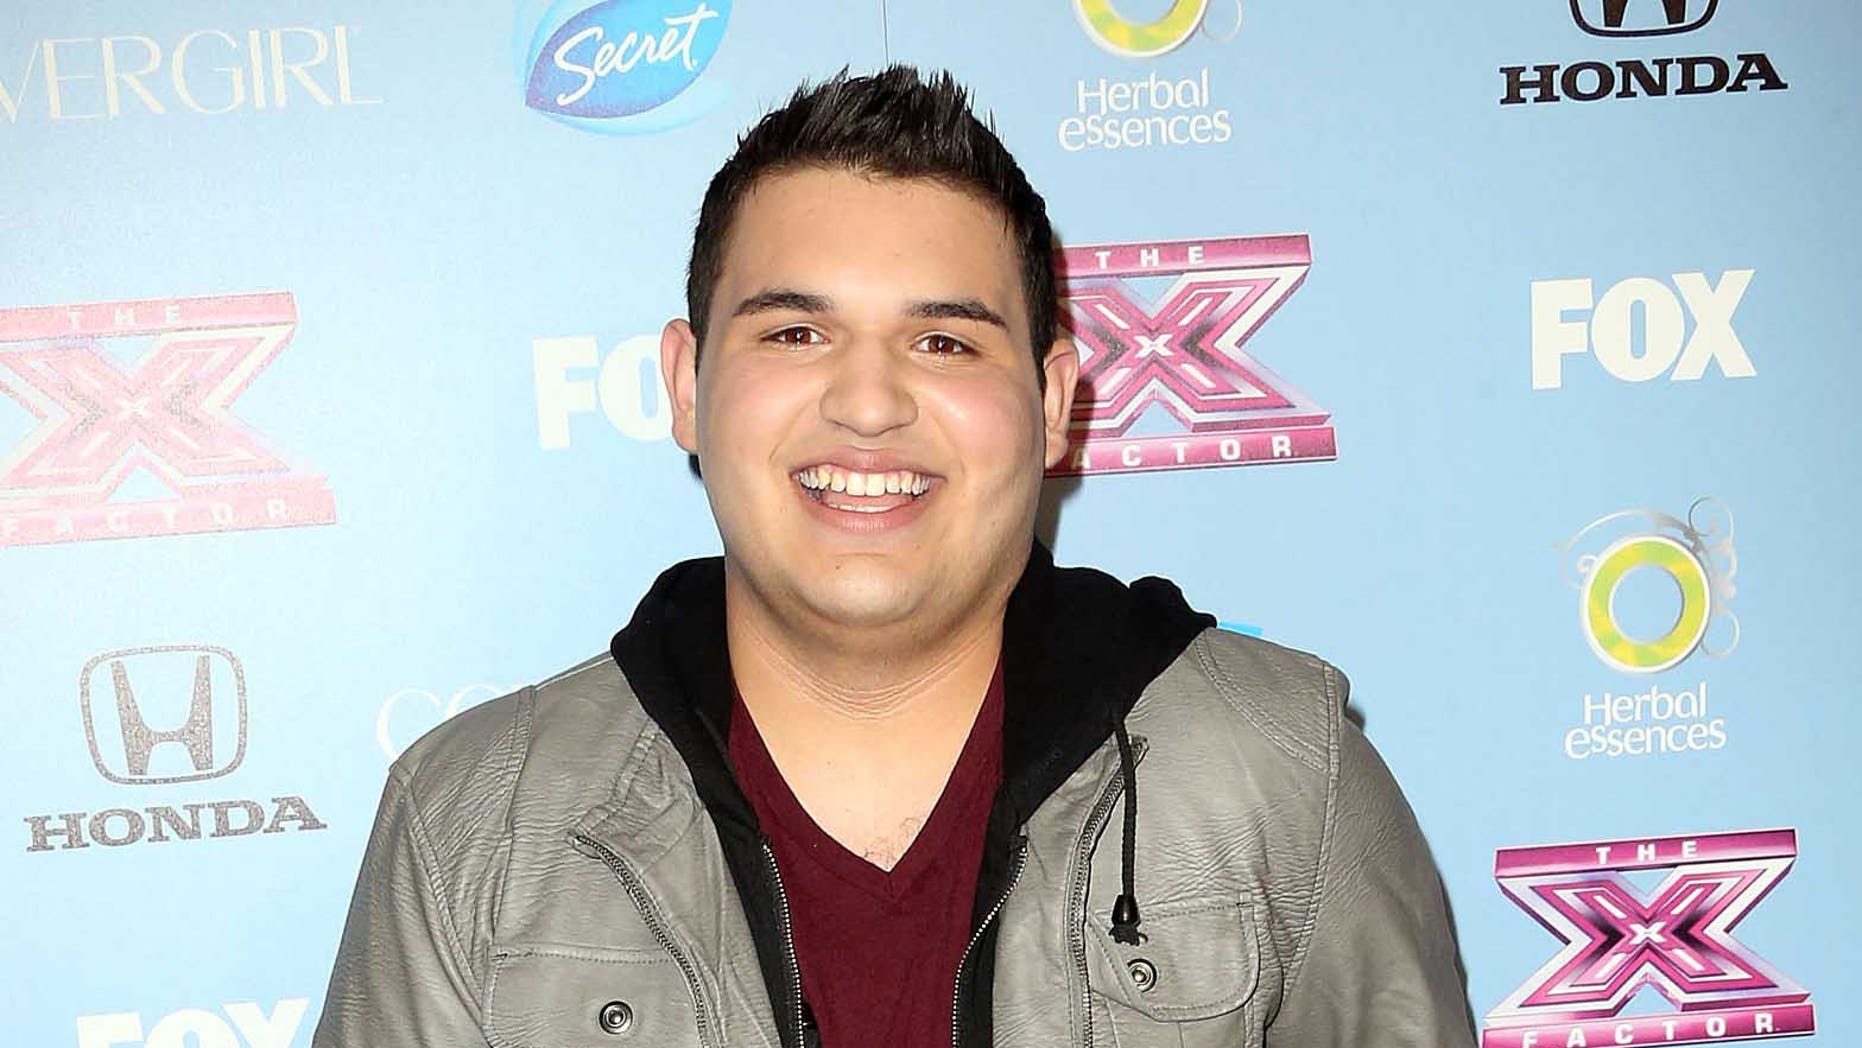 """LOS ANGELES, CA - NOVEMBER 04:  Singer Carlos Guevara attends Fox's """"The X Factor"""" Finalist Party at the SLS Hotel on November 4, 2013 in Los Angeles, California.  (Photo by Frederick M. Brown/Getty Images)"""